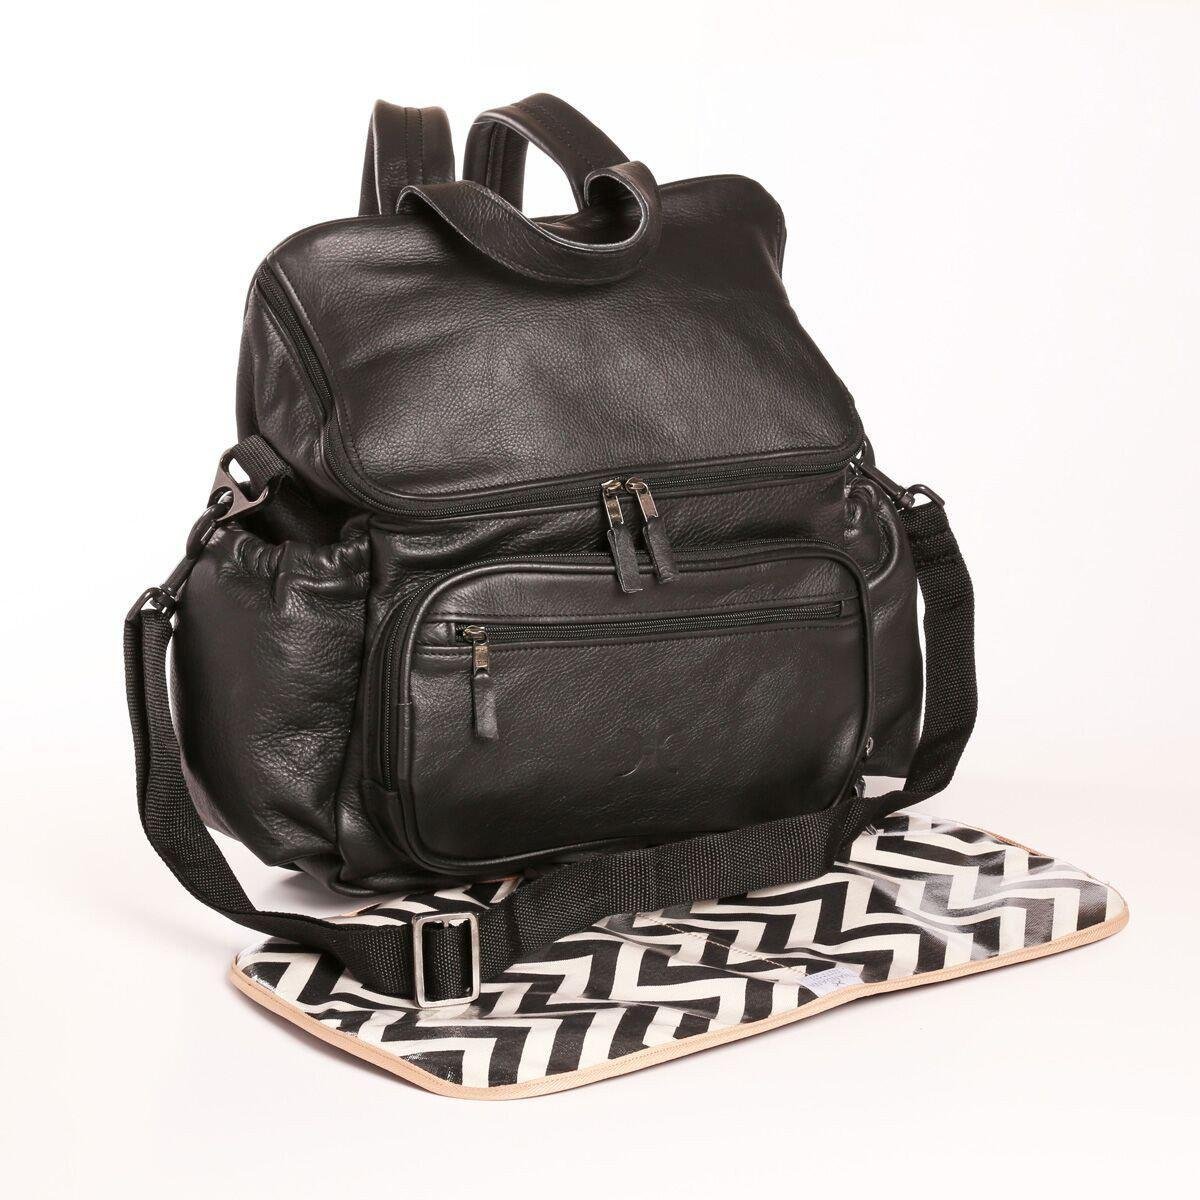 Nappy Backpack Bag - Leather - Esque